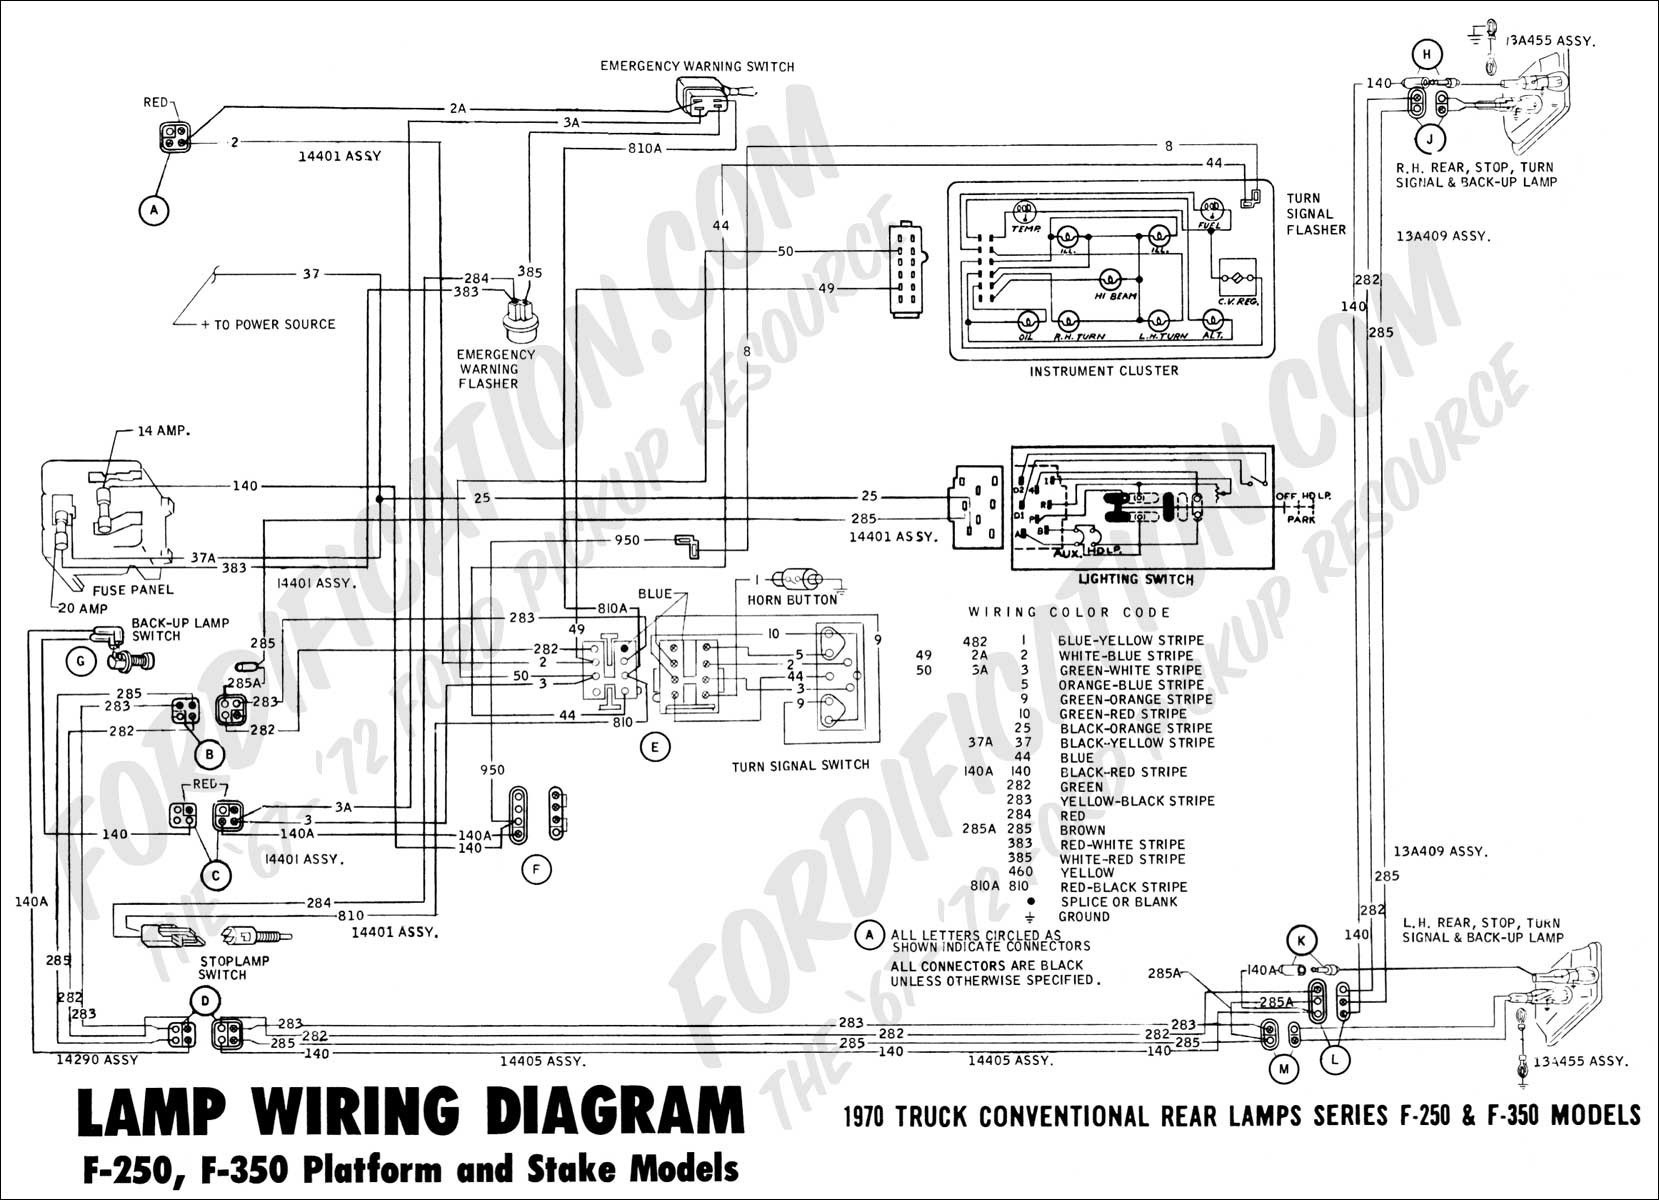 Tail Light Wiring Diagram For 95 Ford F 250 Smart Wiring Diagrams \u2022  Nissan 370Z Wiring Diagram Honda Ridgeline Wiring Diagram Lighting